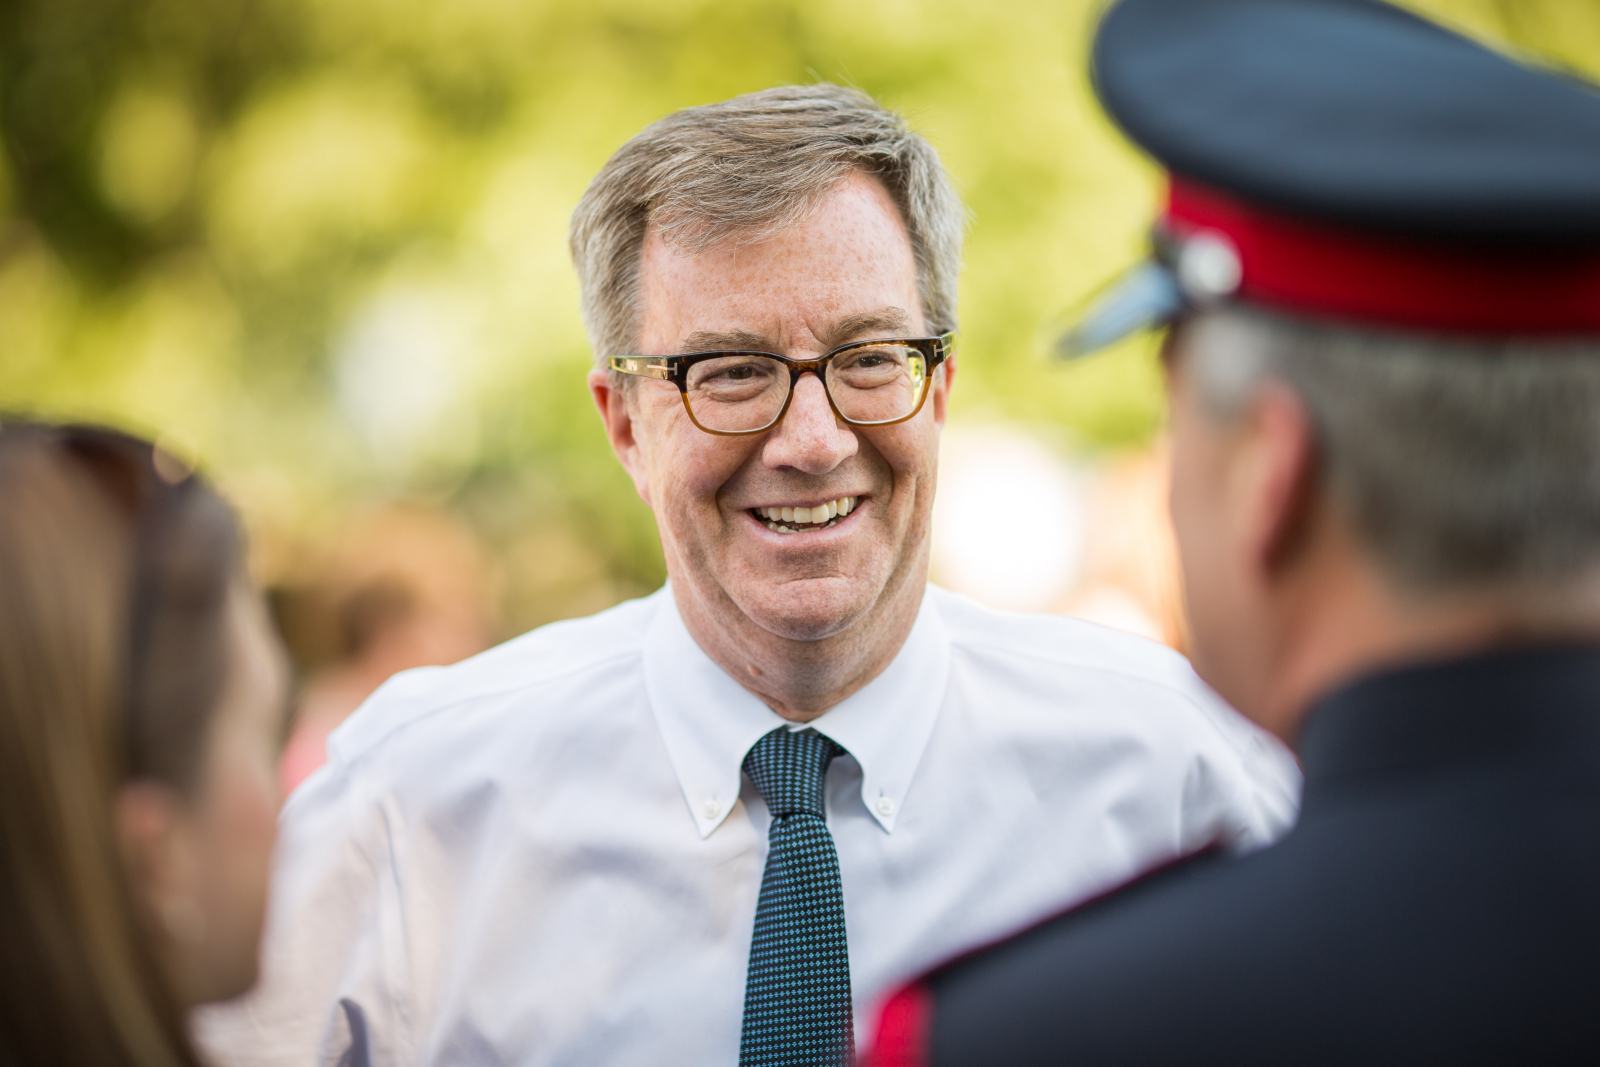 City of Ottawa, Ottawa Mayor, Jim Watson